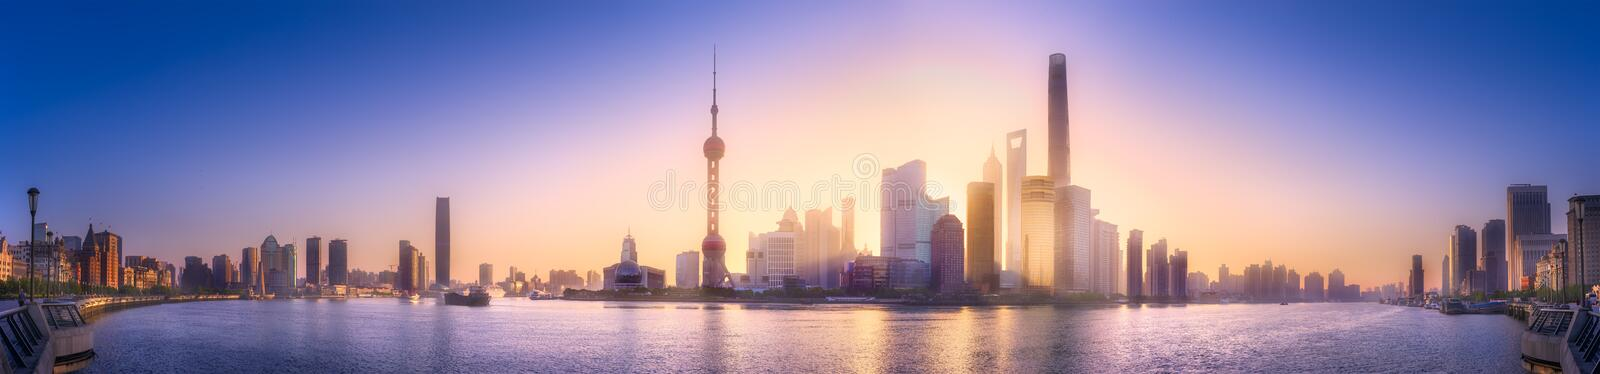 Download Shanghai skyline cityscape stock photo. Image of destination - 97052890